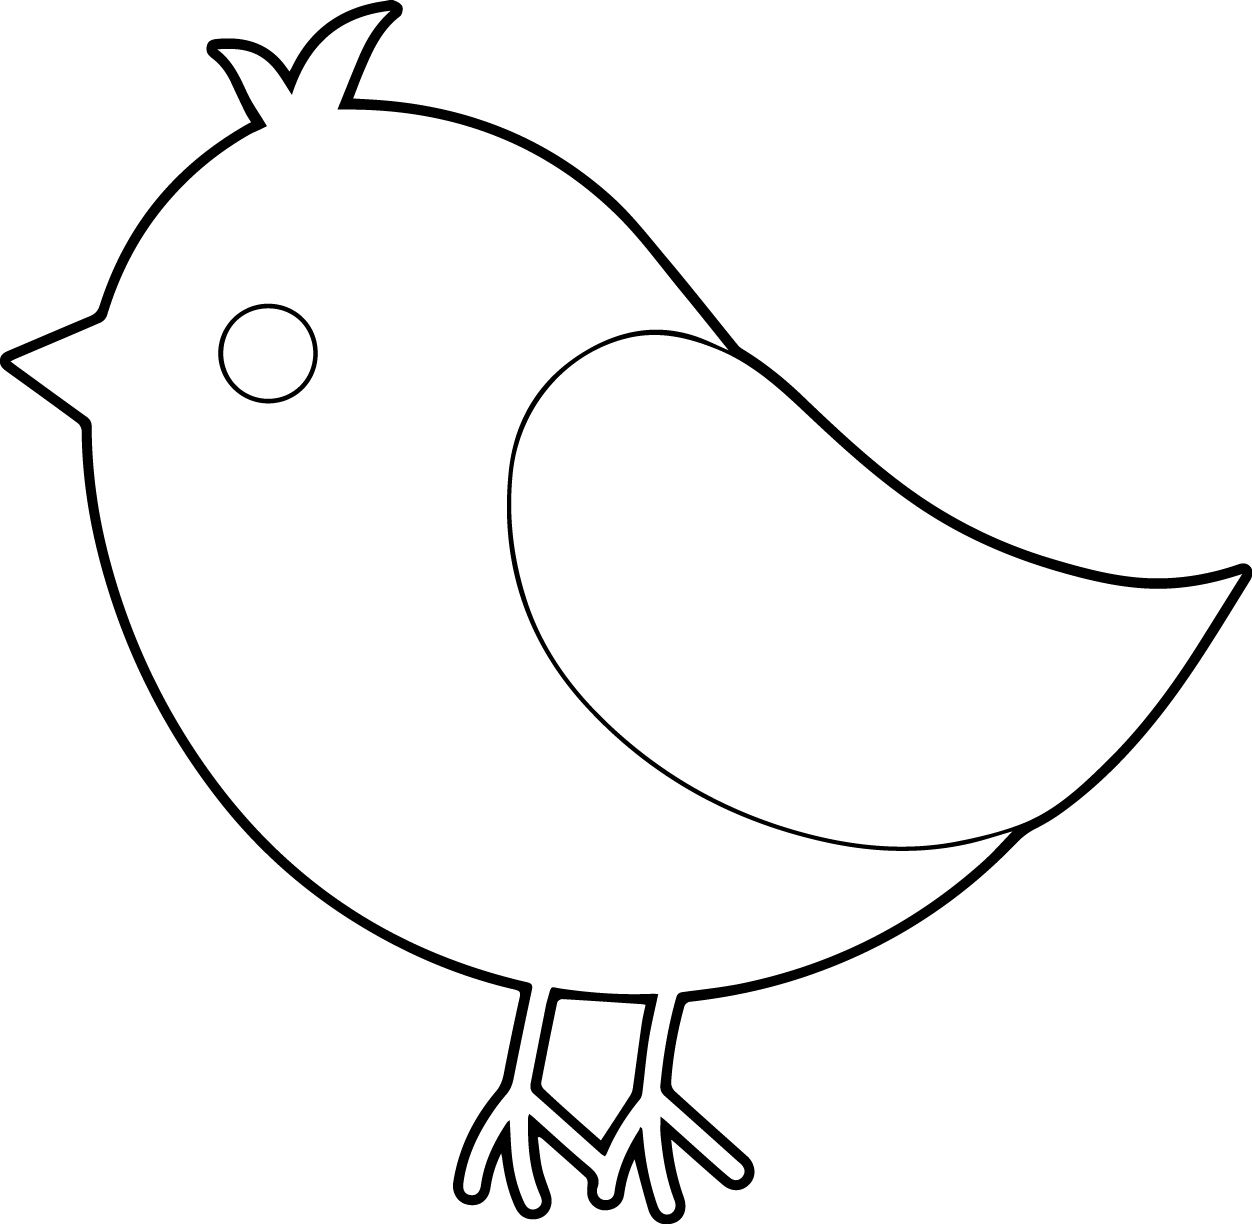 Simple Bird Coloring Page Wecoloringpage Bird Coloring Pages Shape Coloring Pages Puppy Coloring Pages